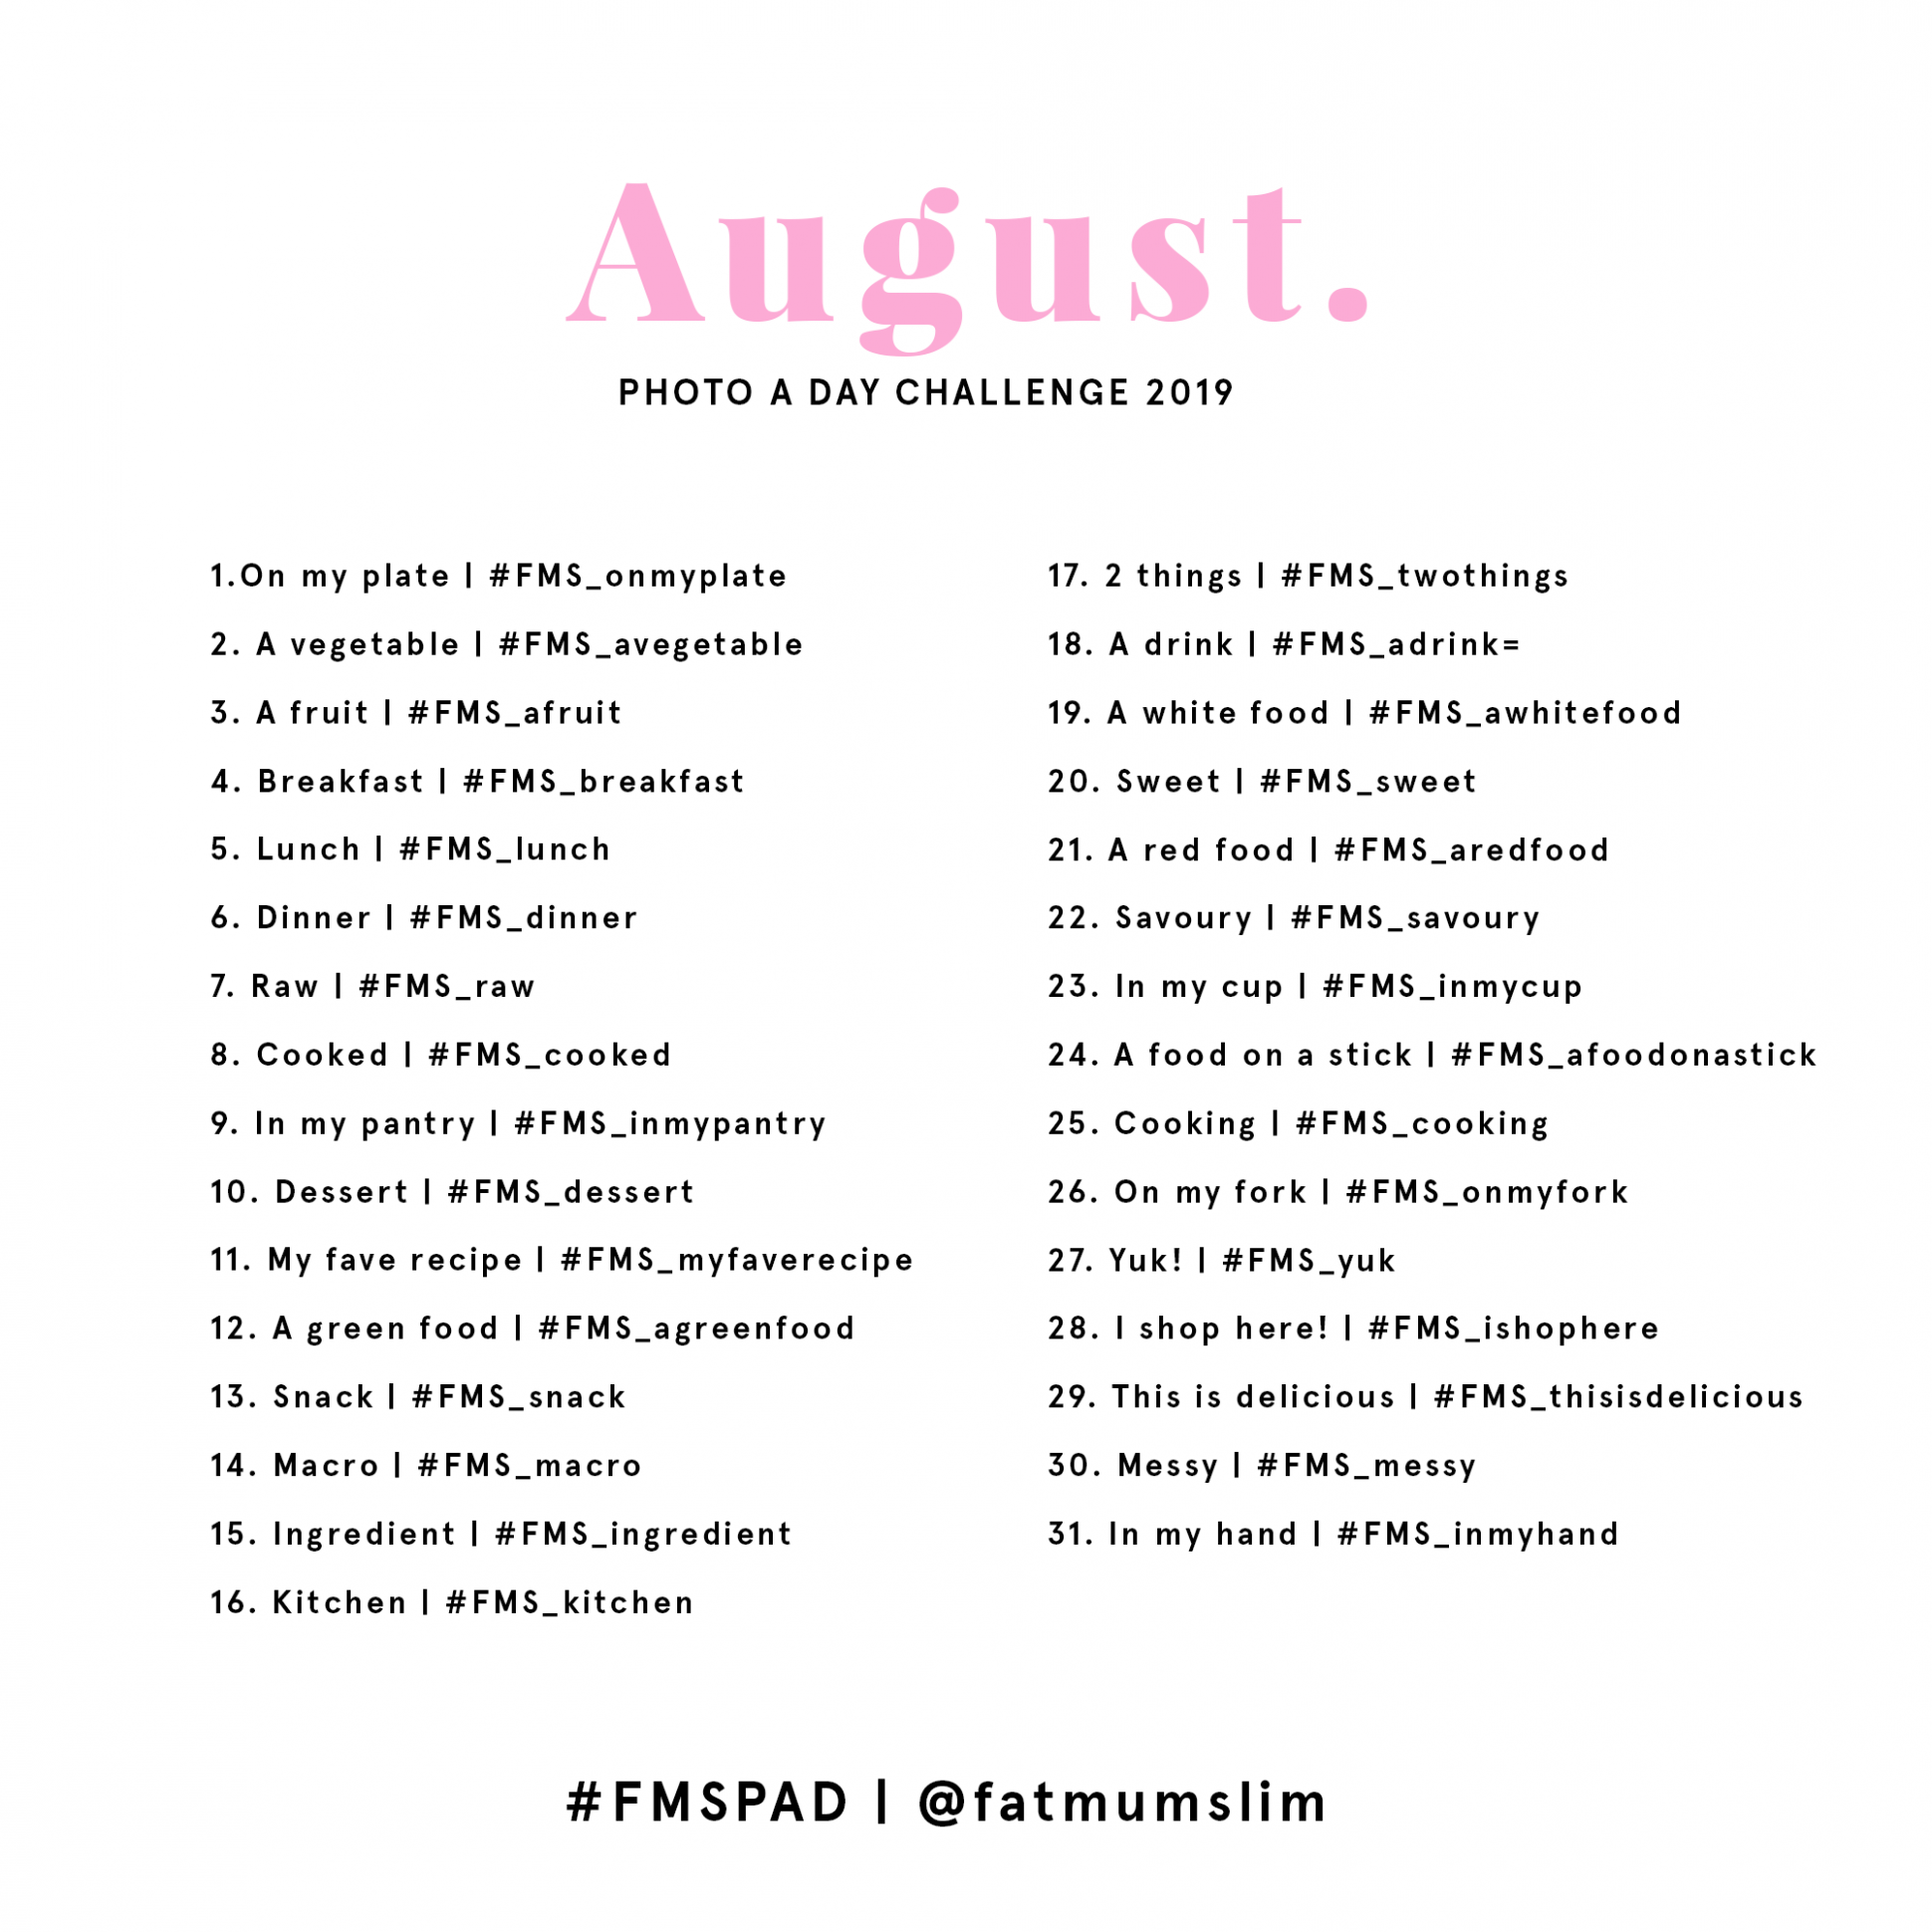 AUGUST-HASHTAGS - Fat Mum Slim - food recipes hashtags